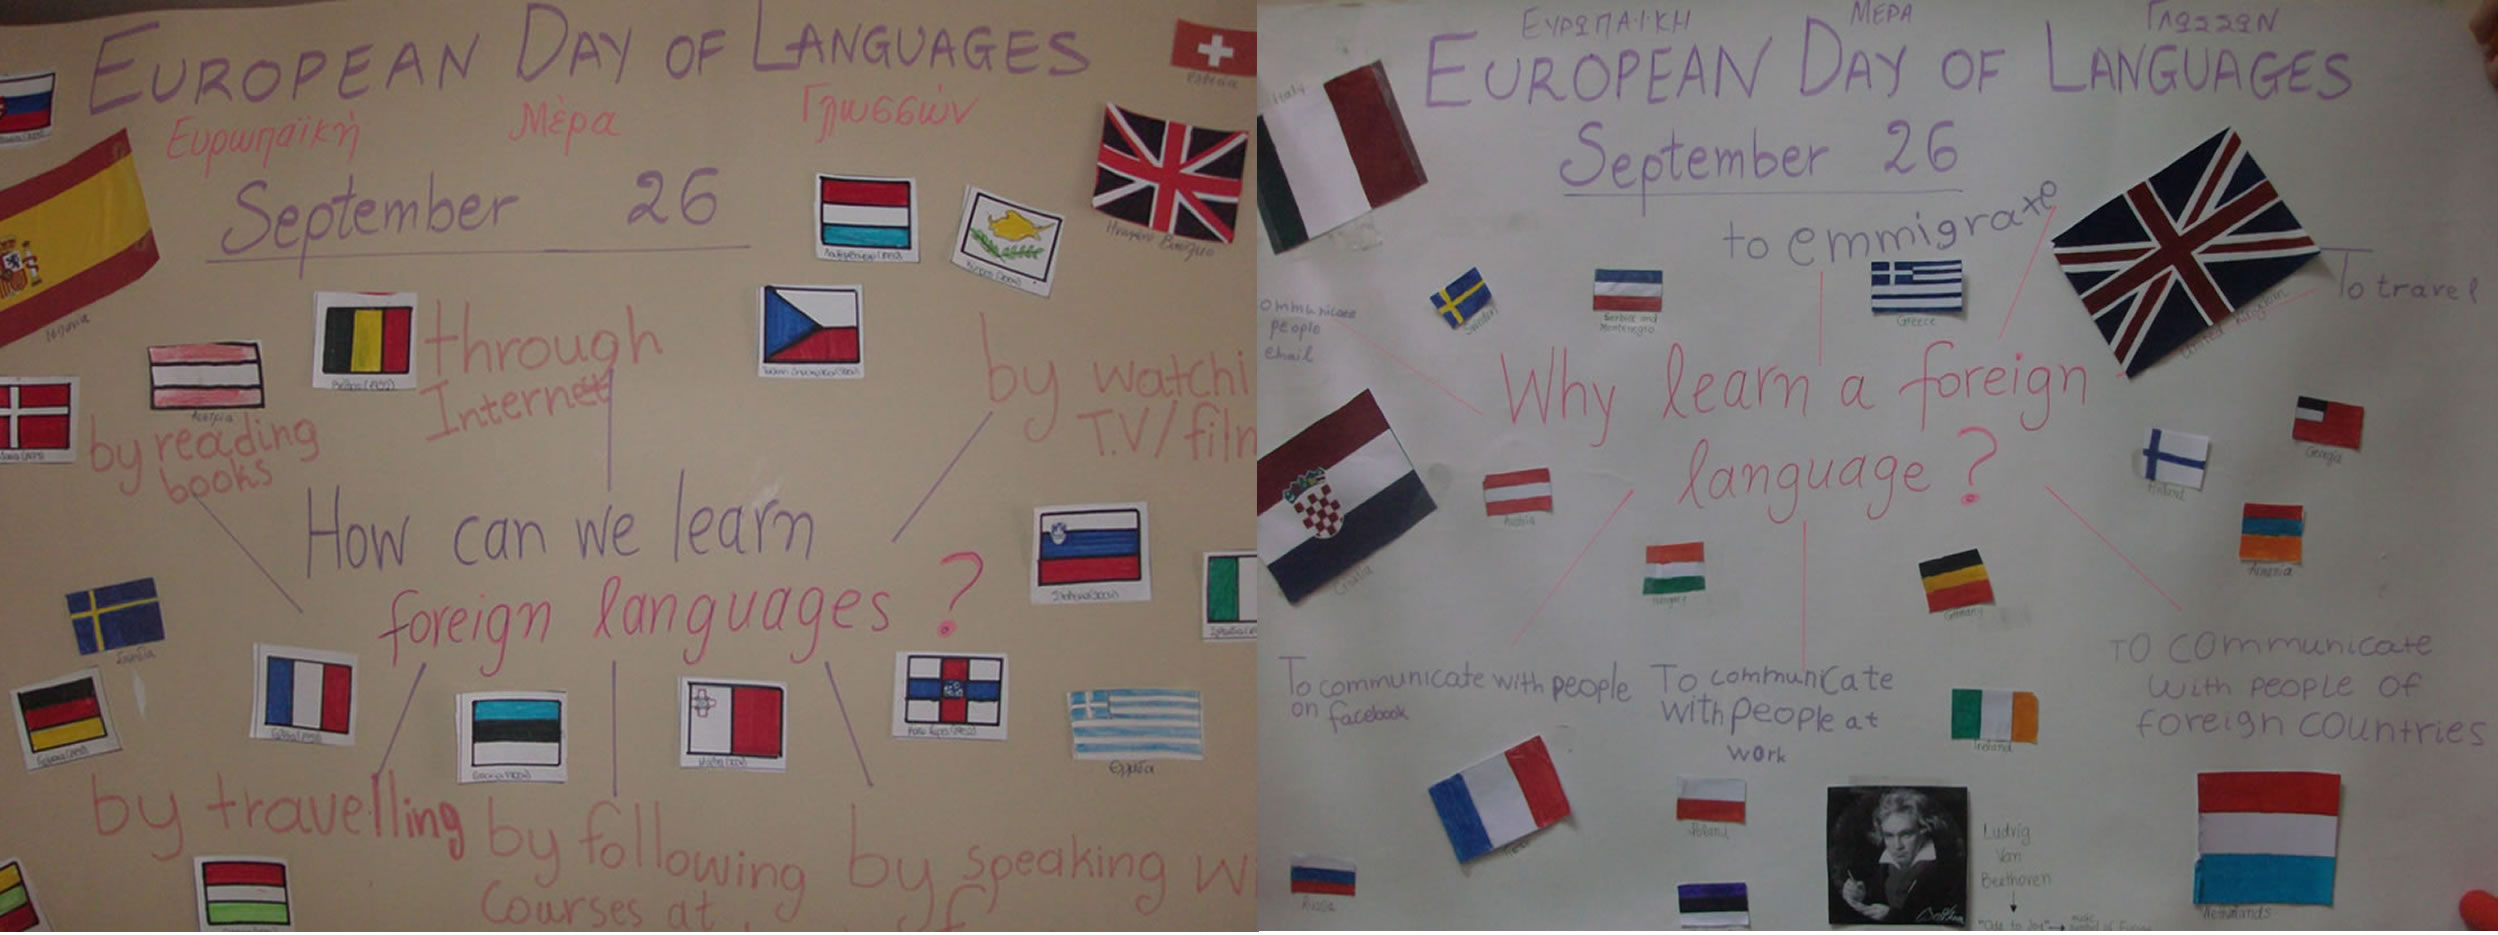 European Day Of Languages Teachers Teaching Materials